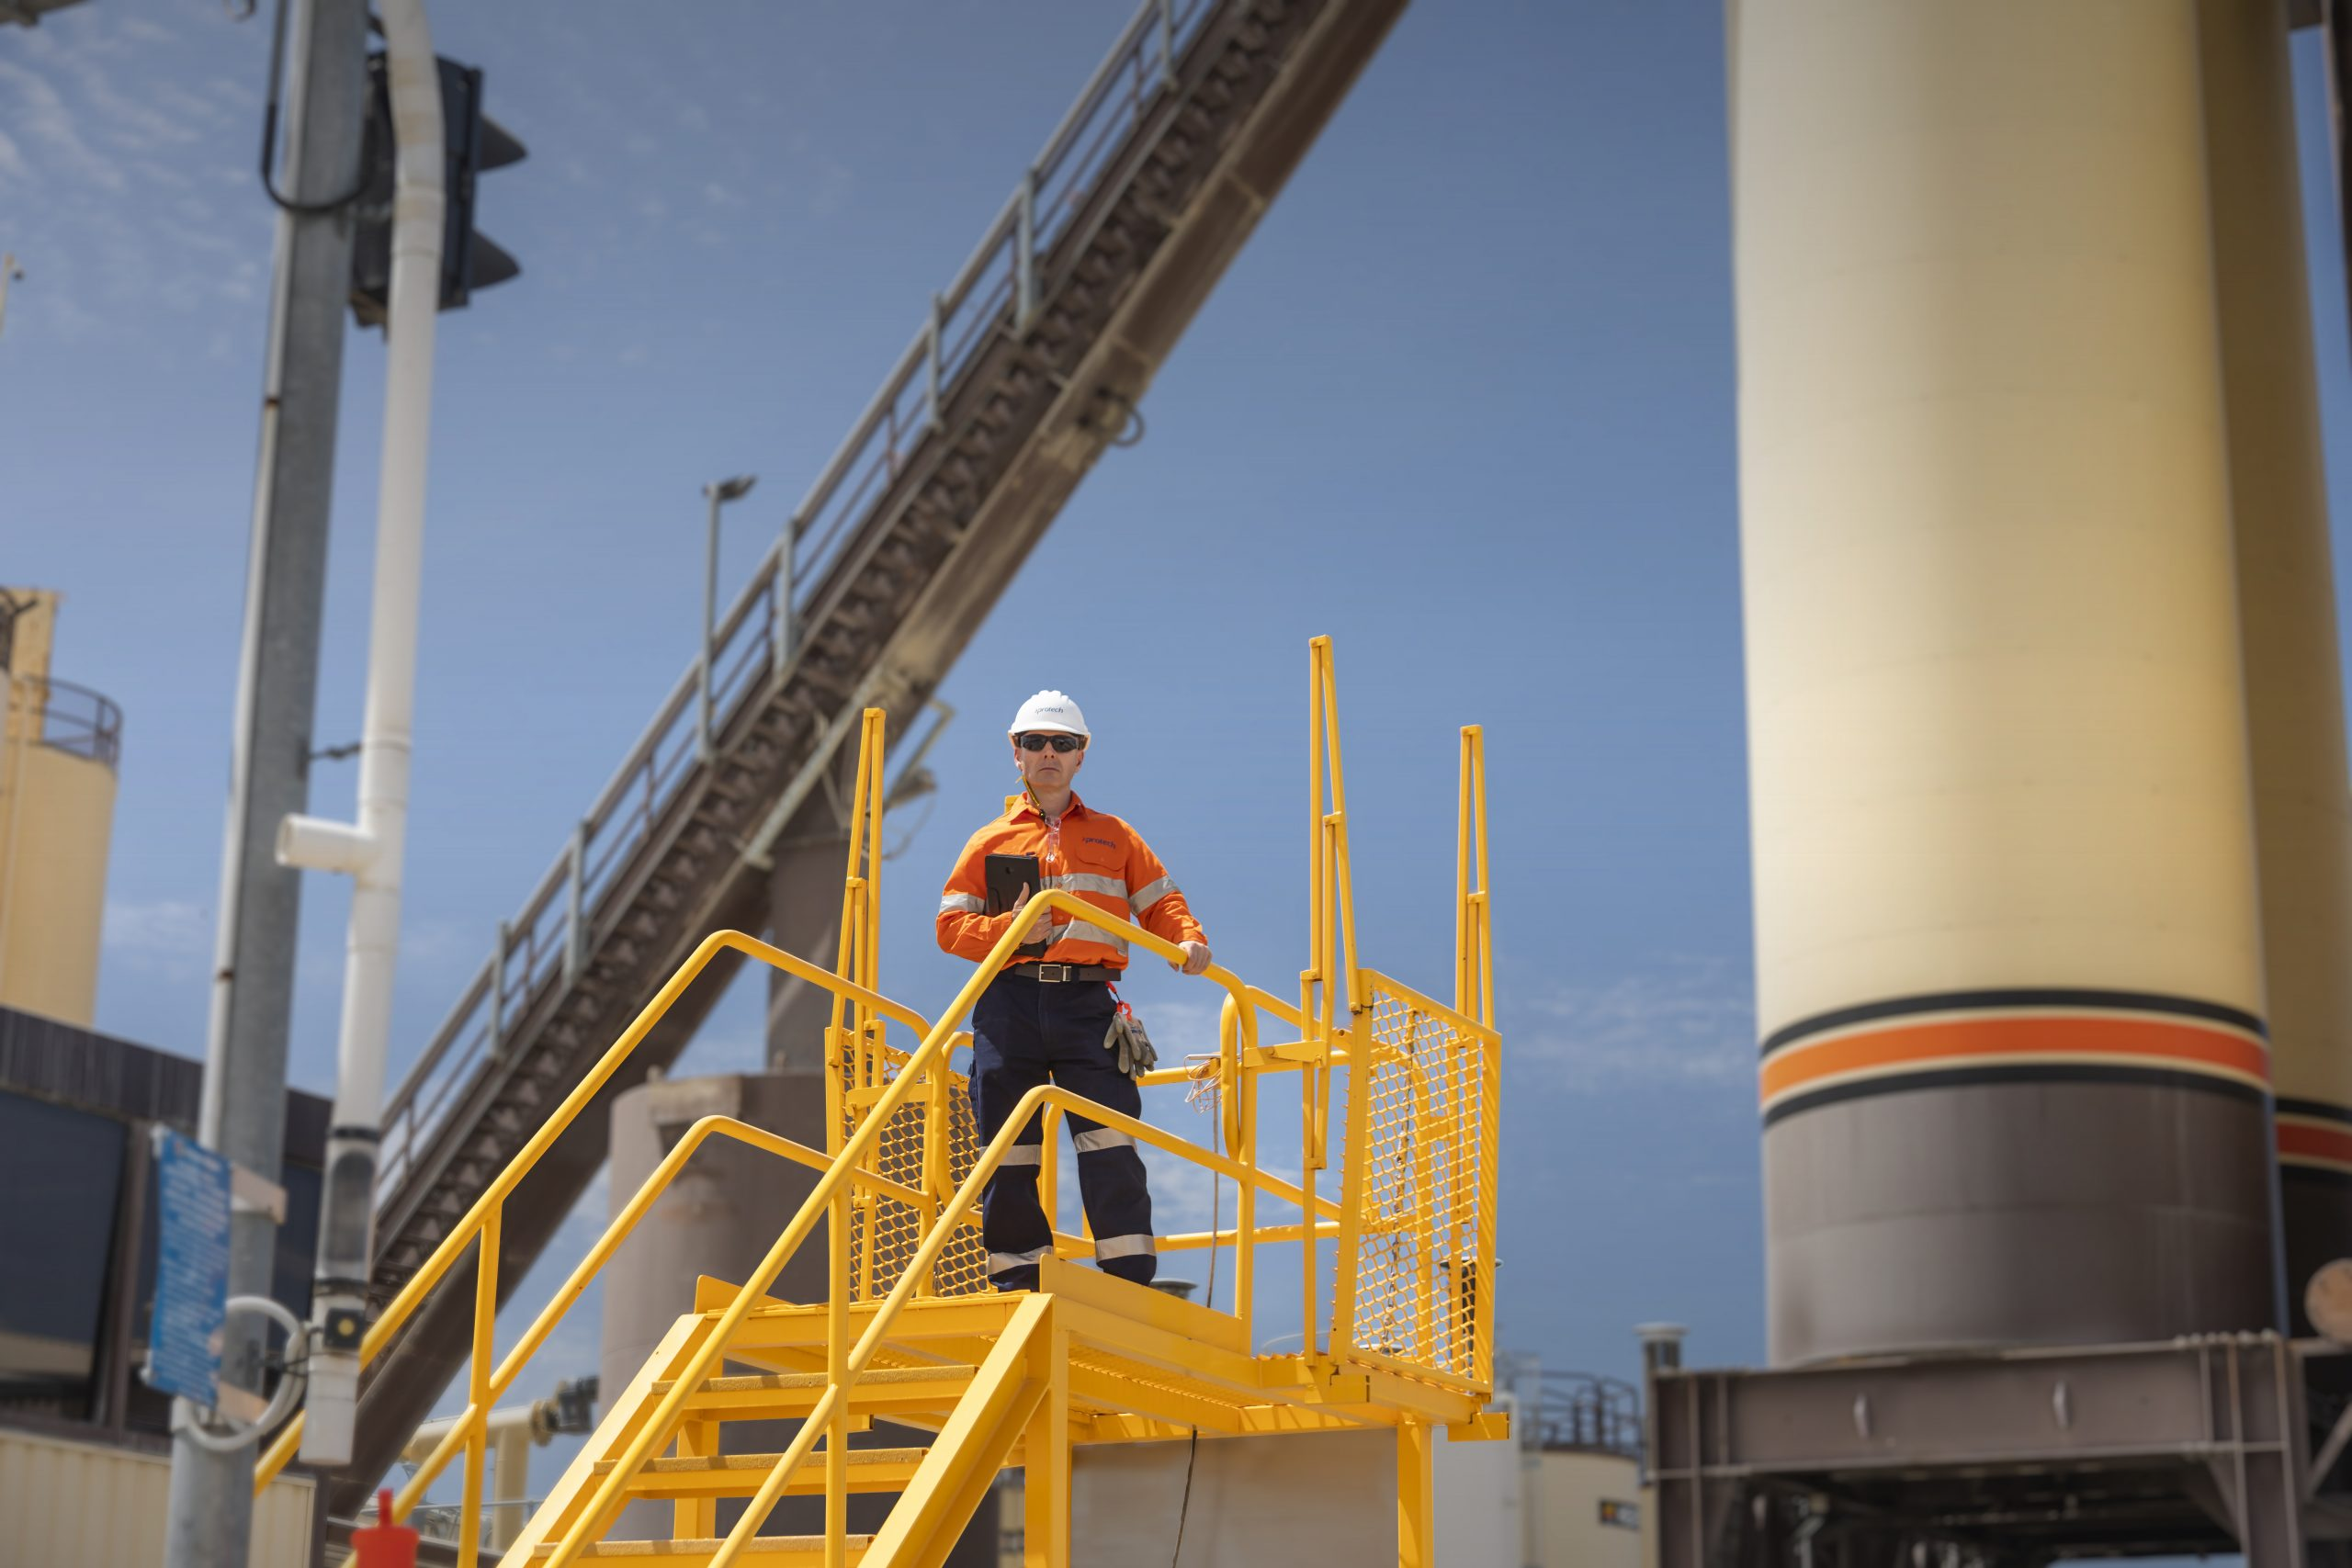 Protech focuses on a safe working environment for all